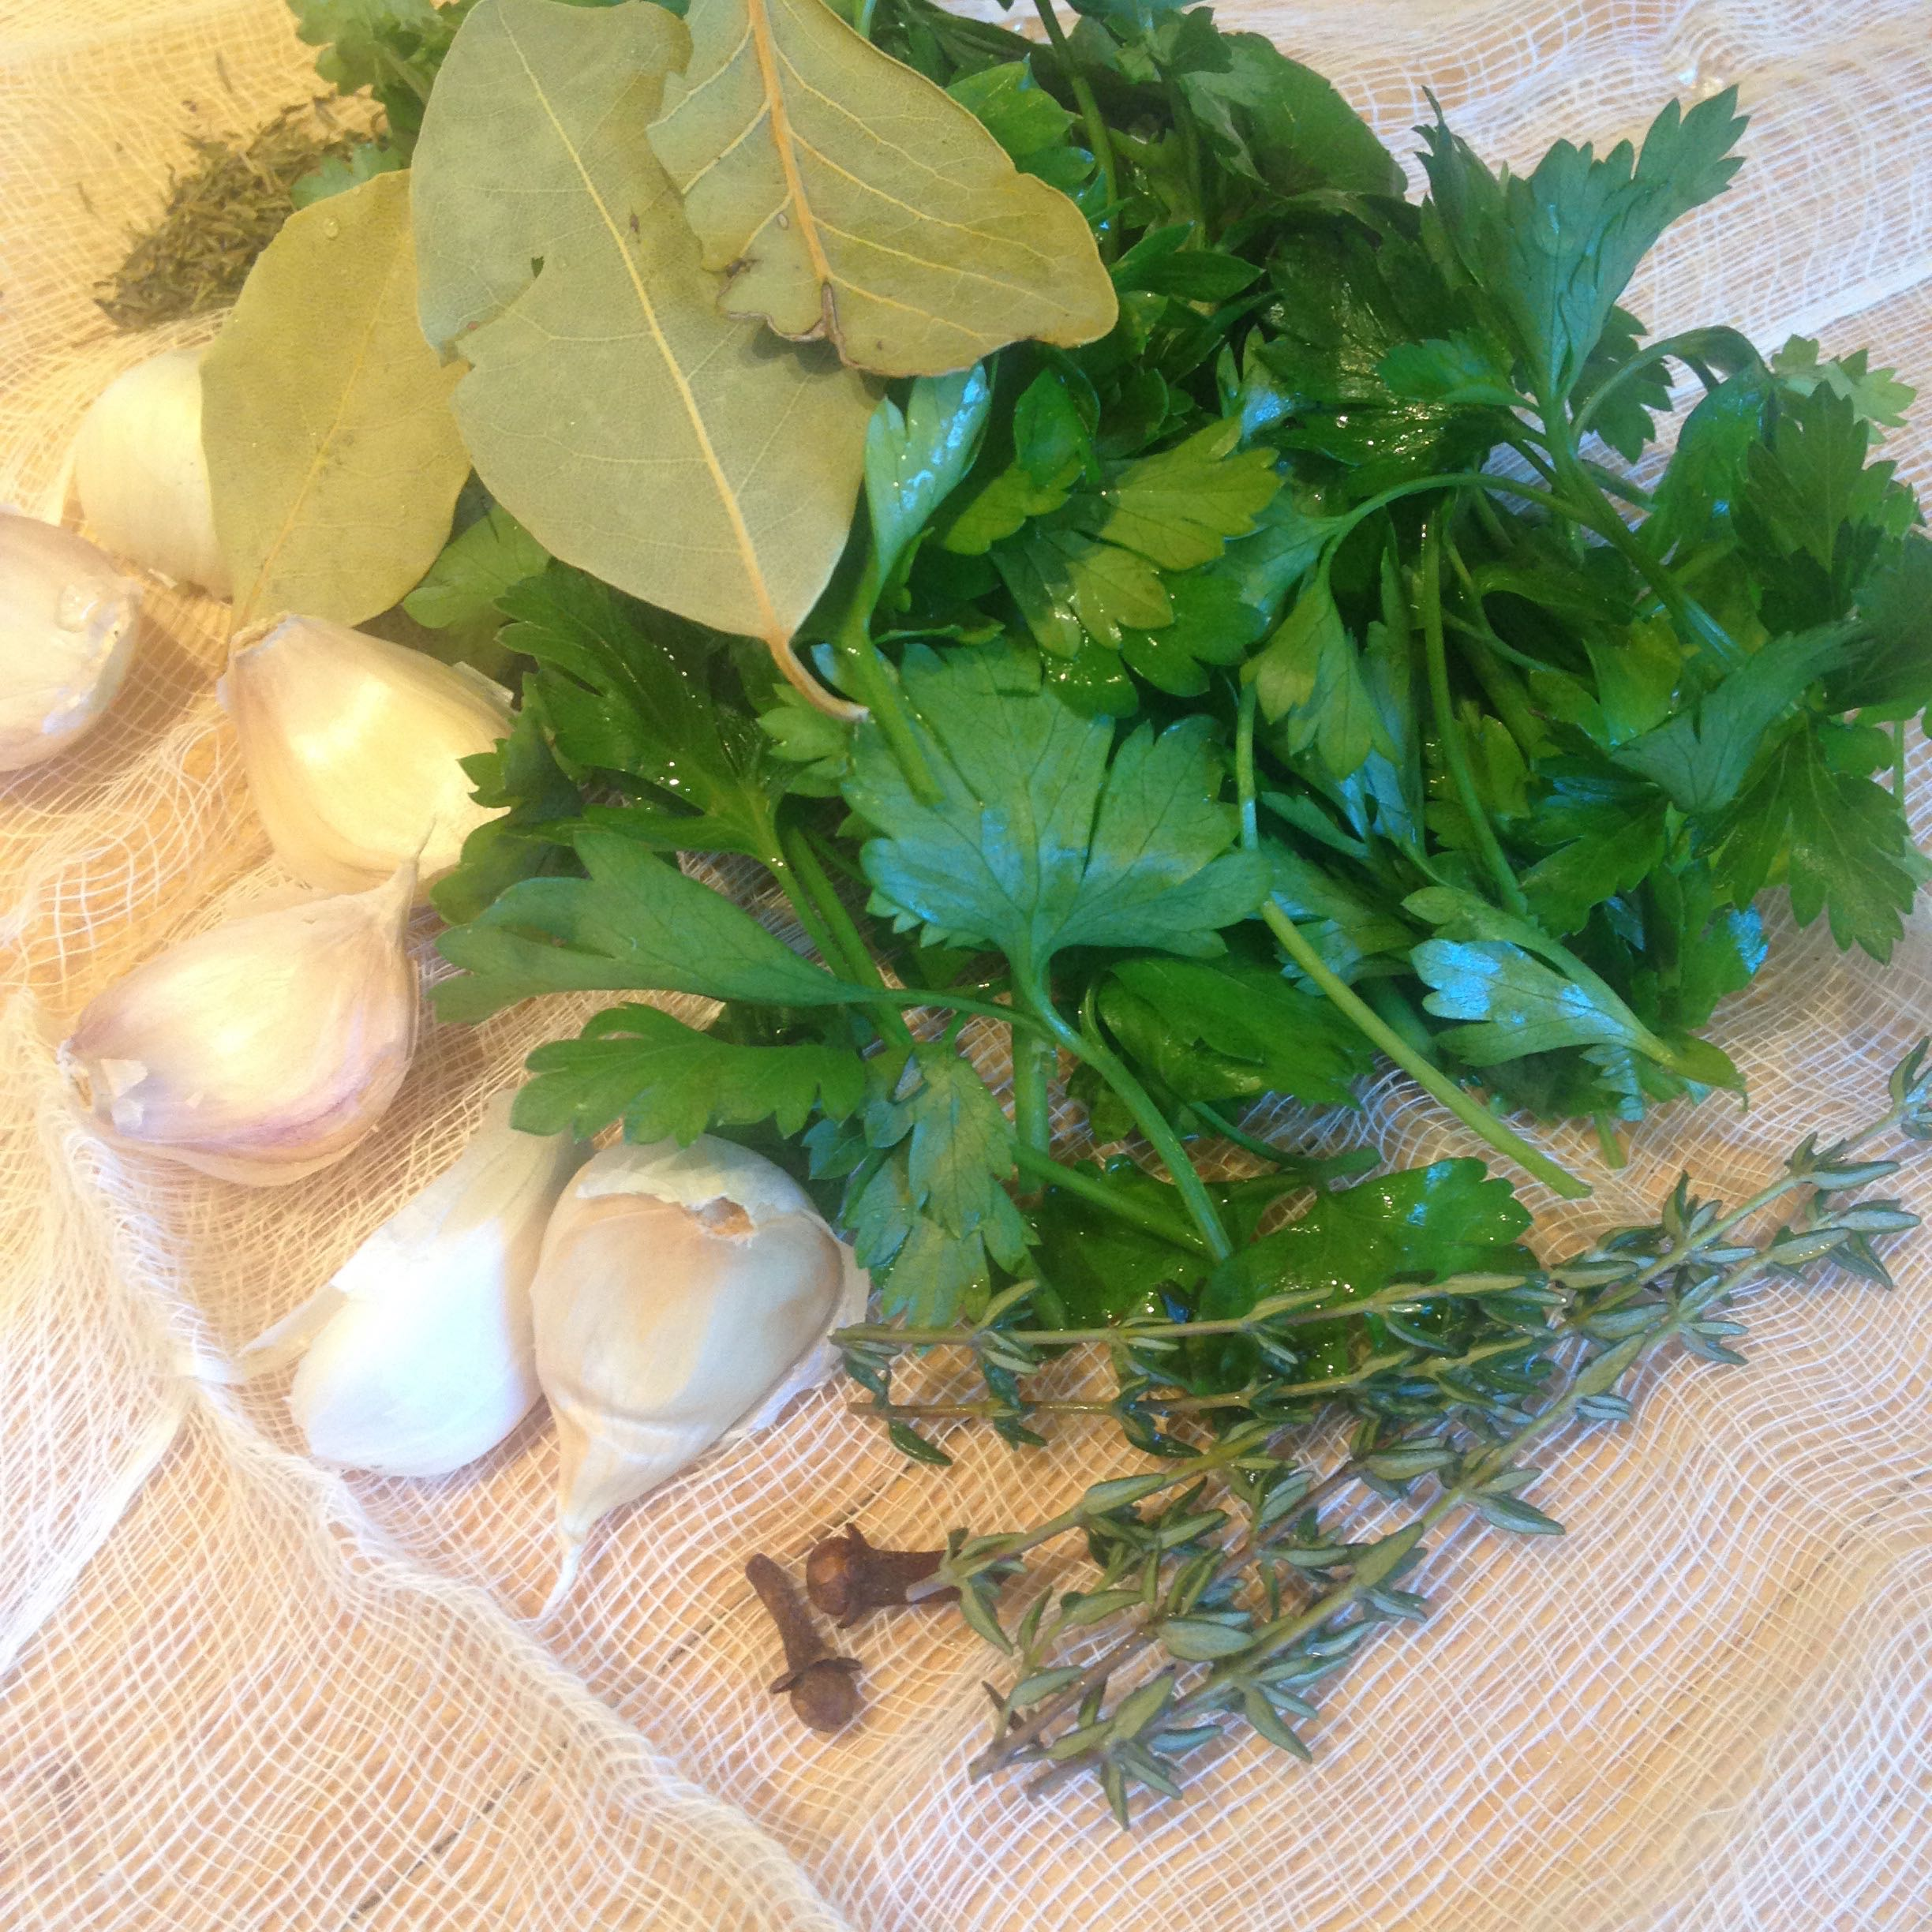 The bouquet garni for the beans is pretty important. Parsley, thyme, garlic and bay flavor the beans.